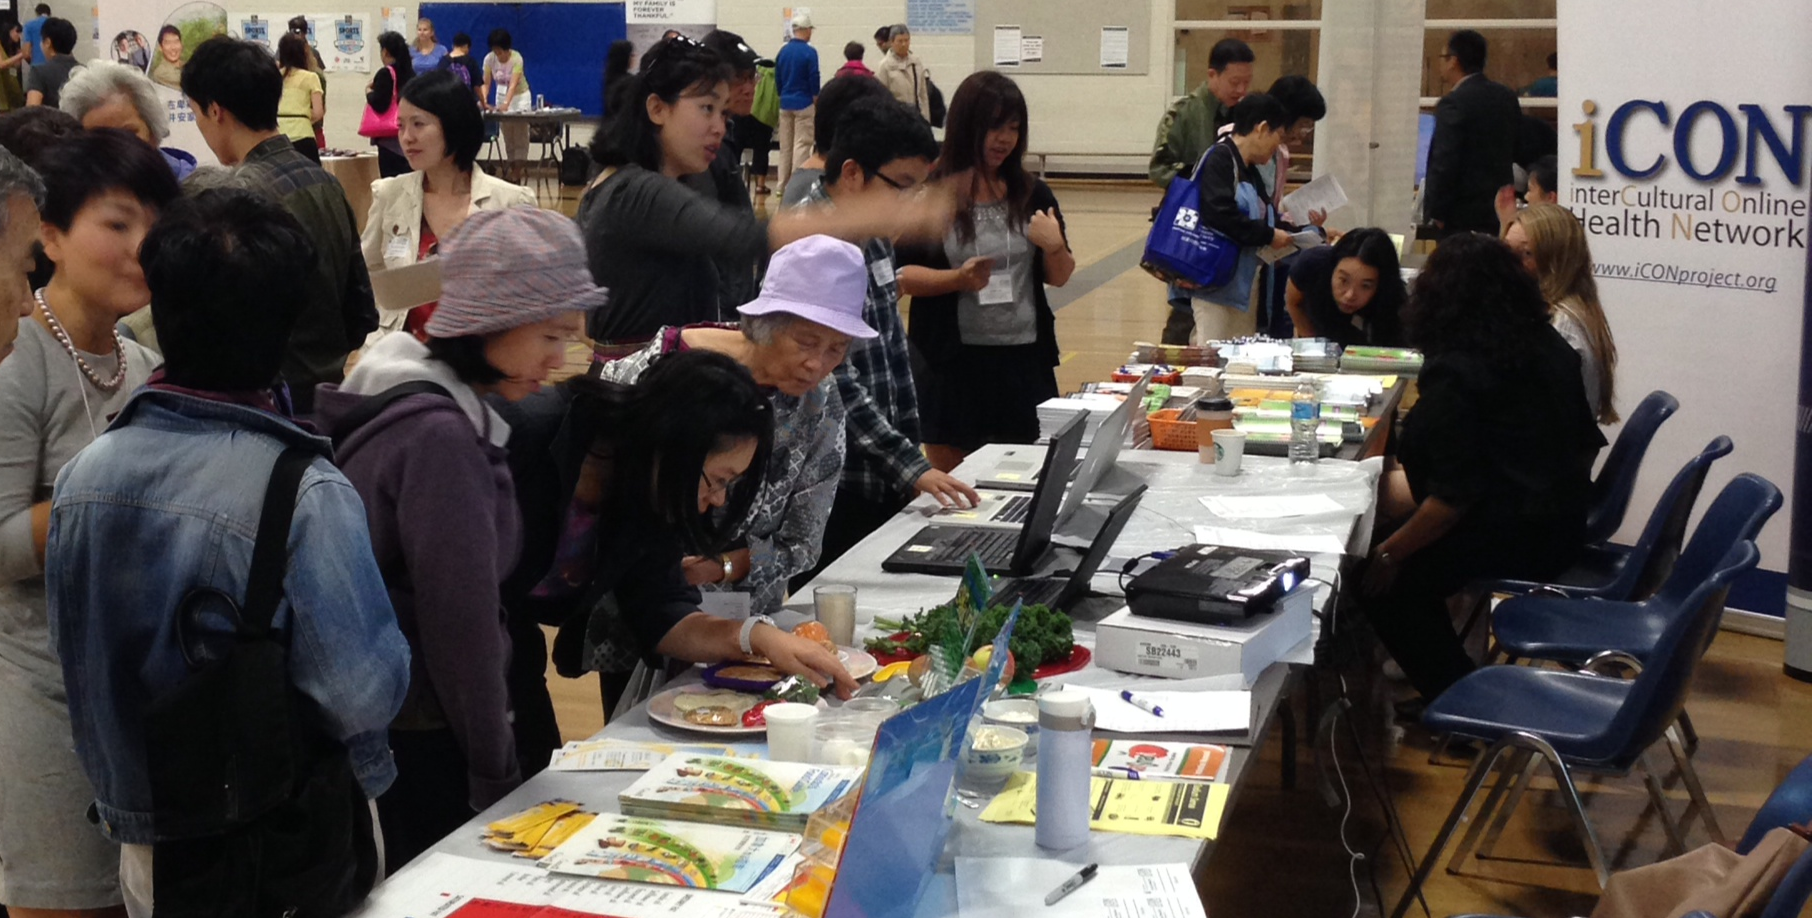 iCON Chinese Workshop at Health Fair 2014: Another Successful Event with the Community to Discuss Healthy eating for Liver Disease